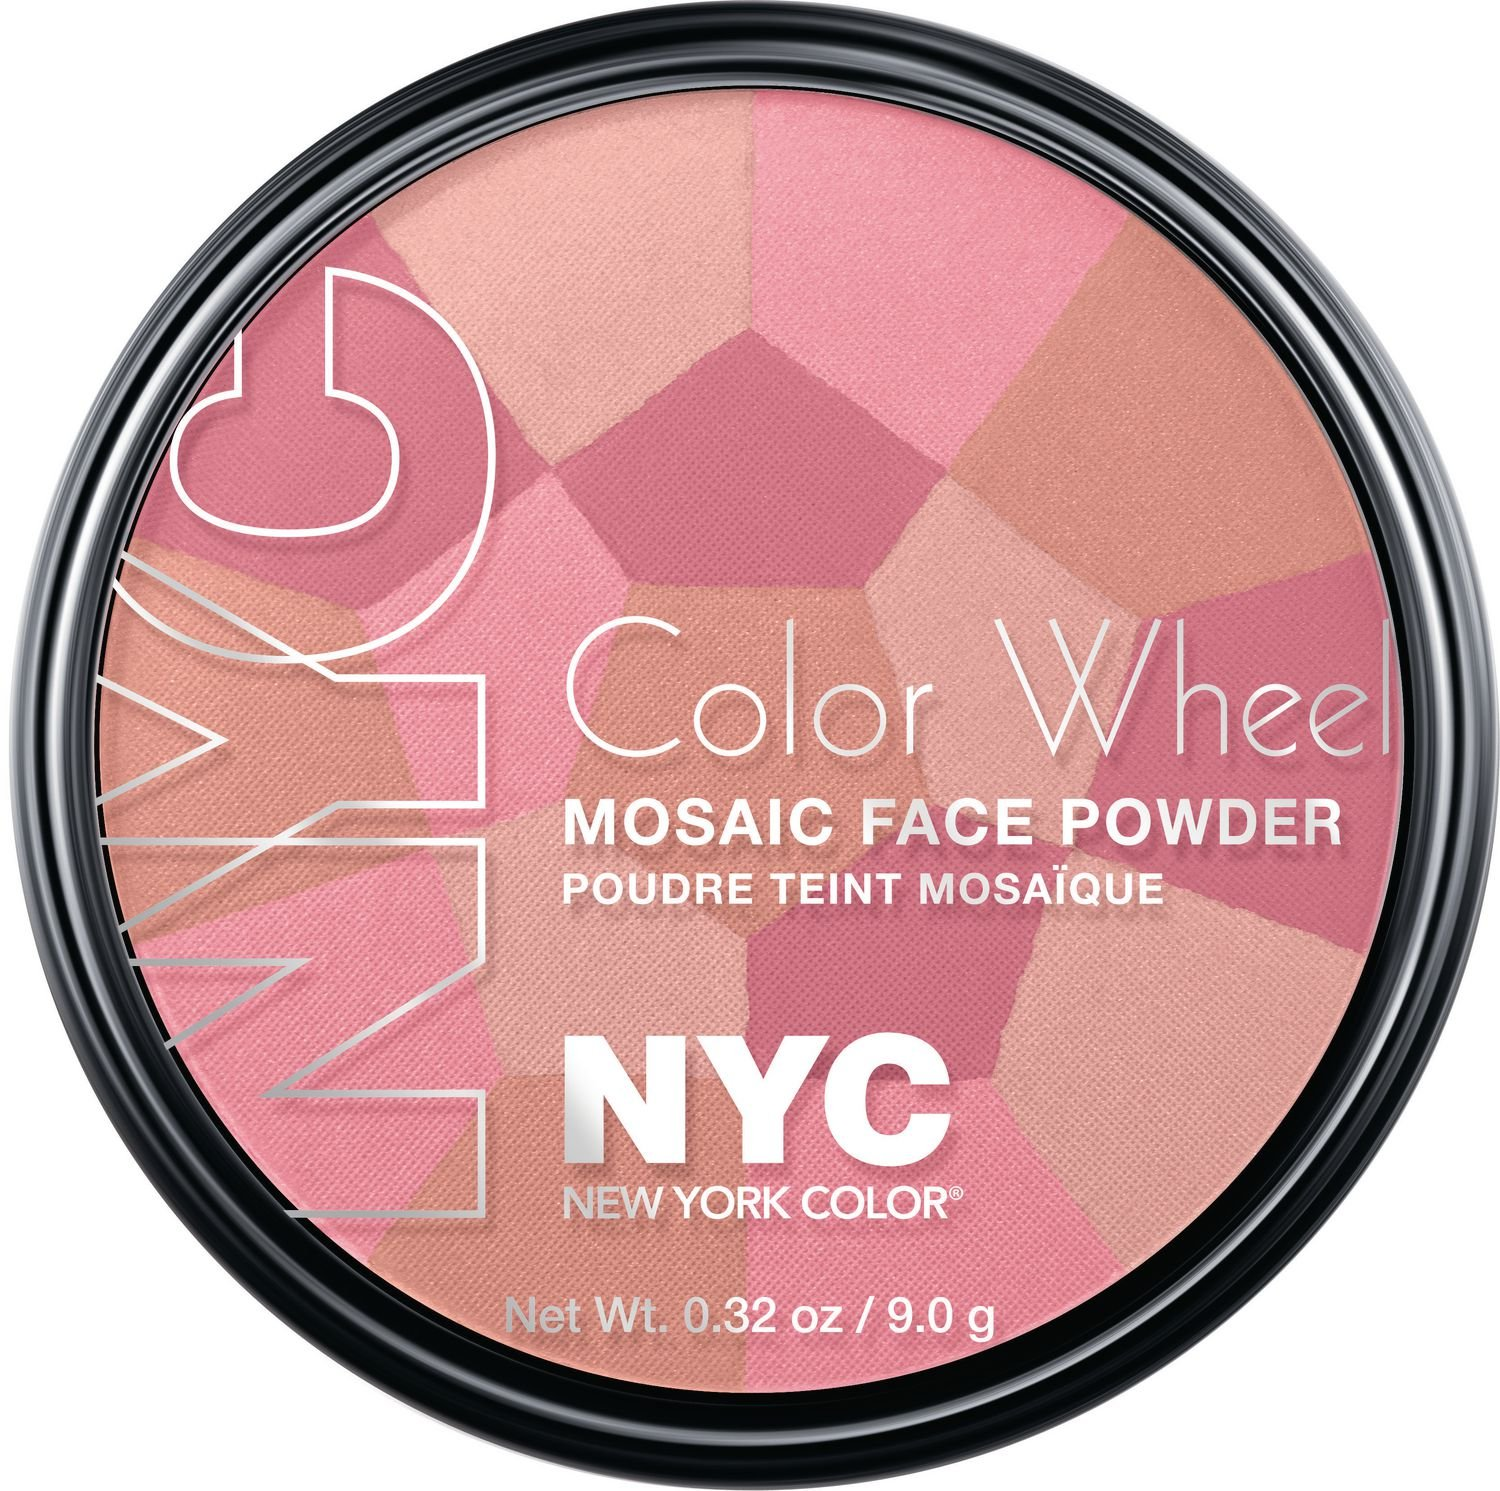 N.Y.C. New York Color, Color Wheel Mosaic Face Powder, Pink Cheek Glow, 0.32 Ounce Coty 27001063723